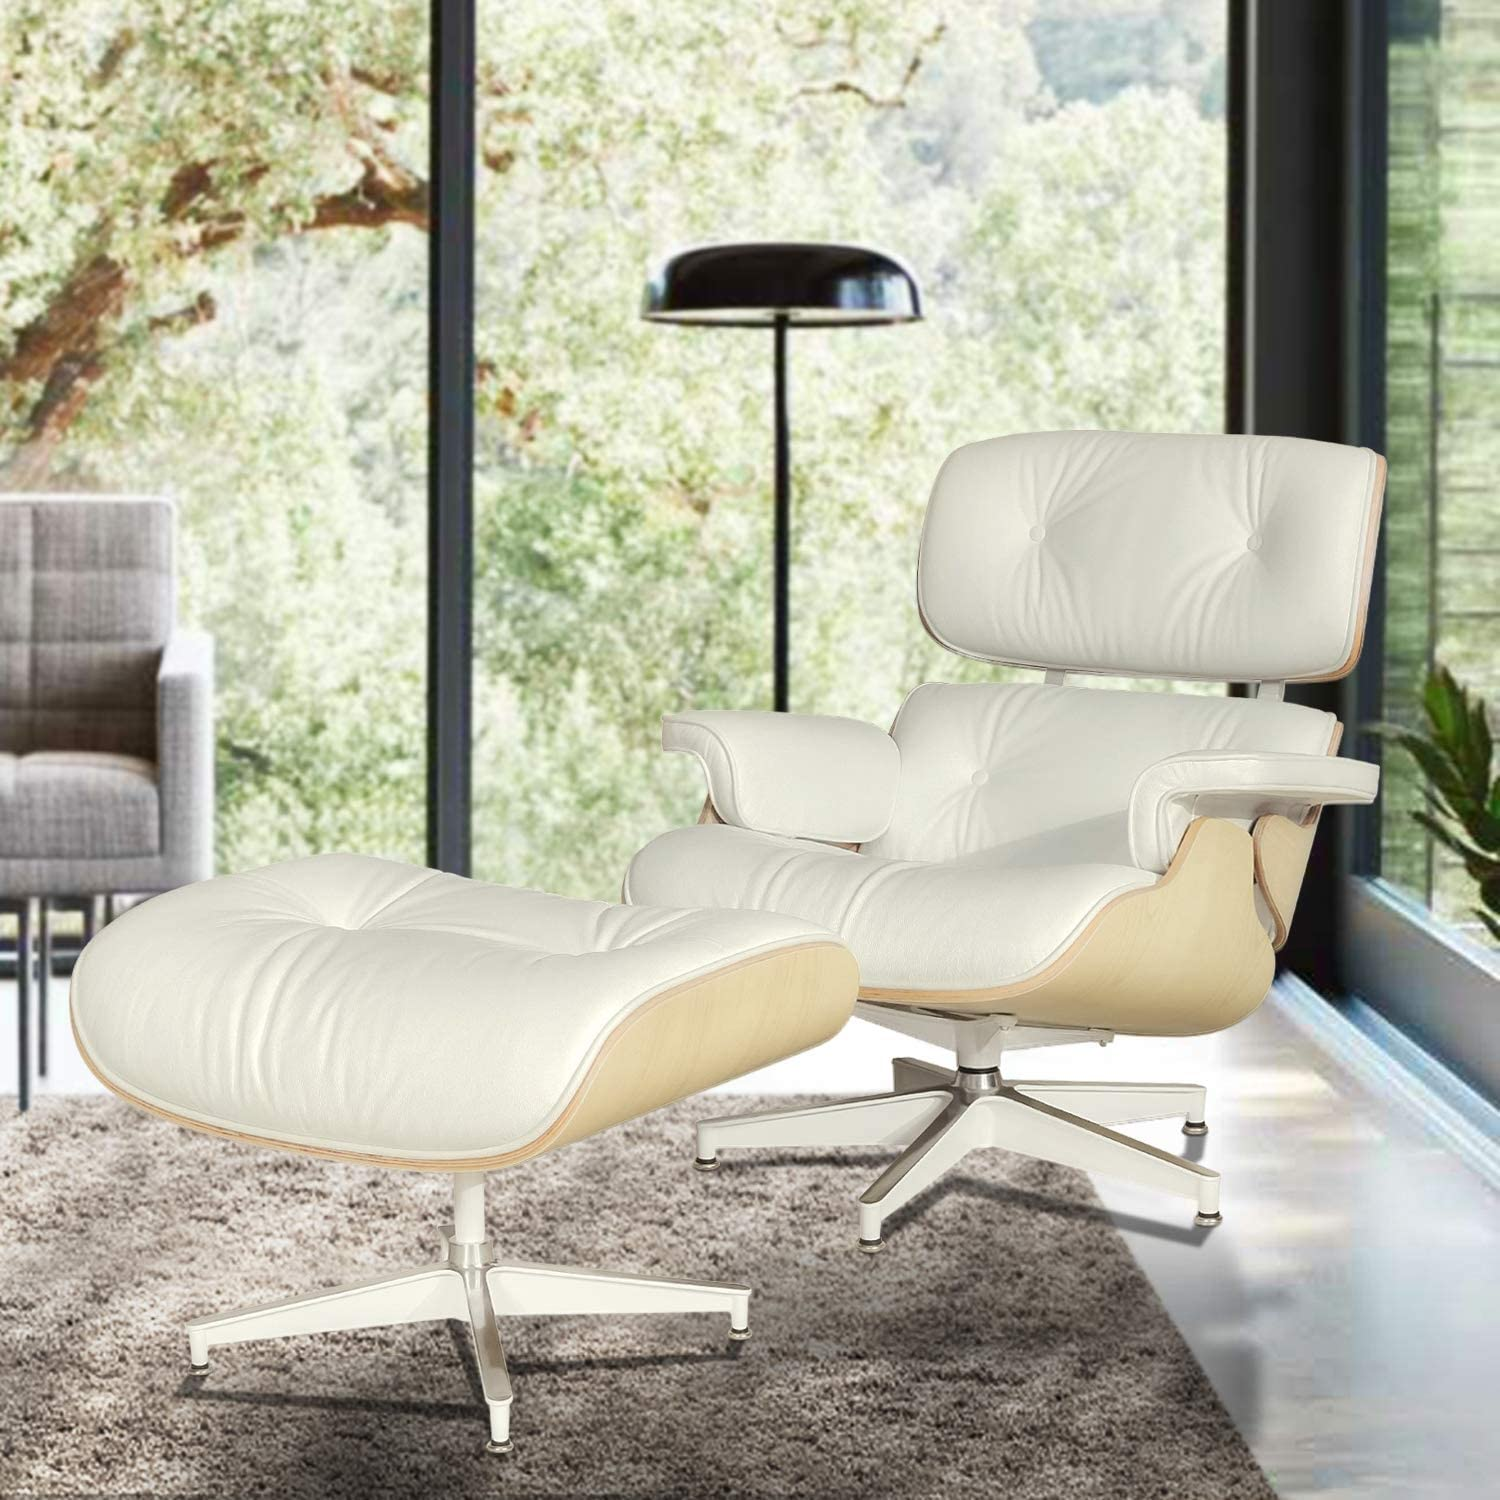 Mid Century Modern Lounge Chair with Ottoman,Mid Century Recliner Chair – High Grade Leather – Cream Solid Wood Lounge Chair Replica Cream